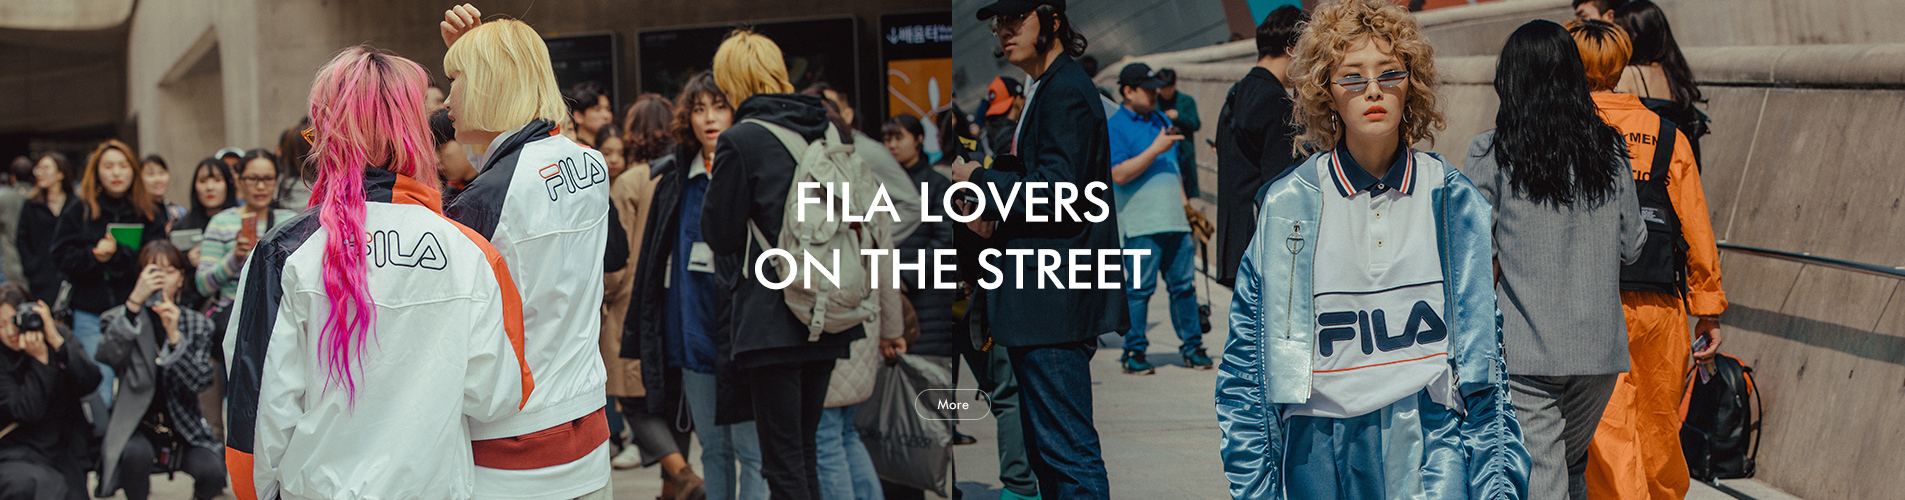 FILA LOVERS ON THE STREET